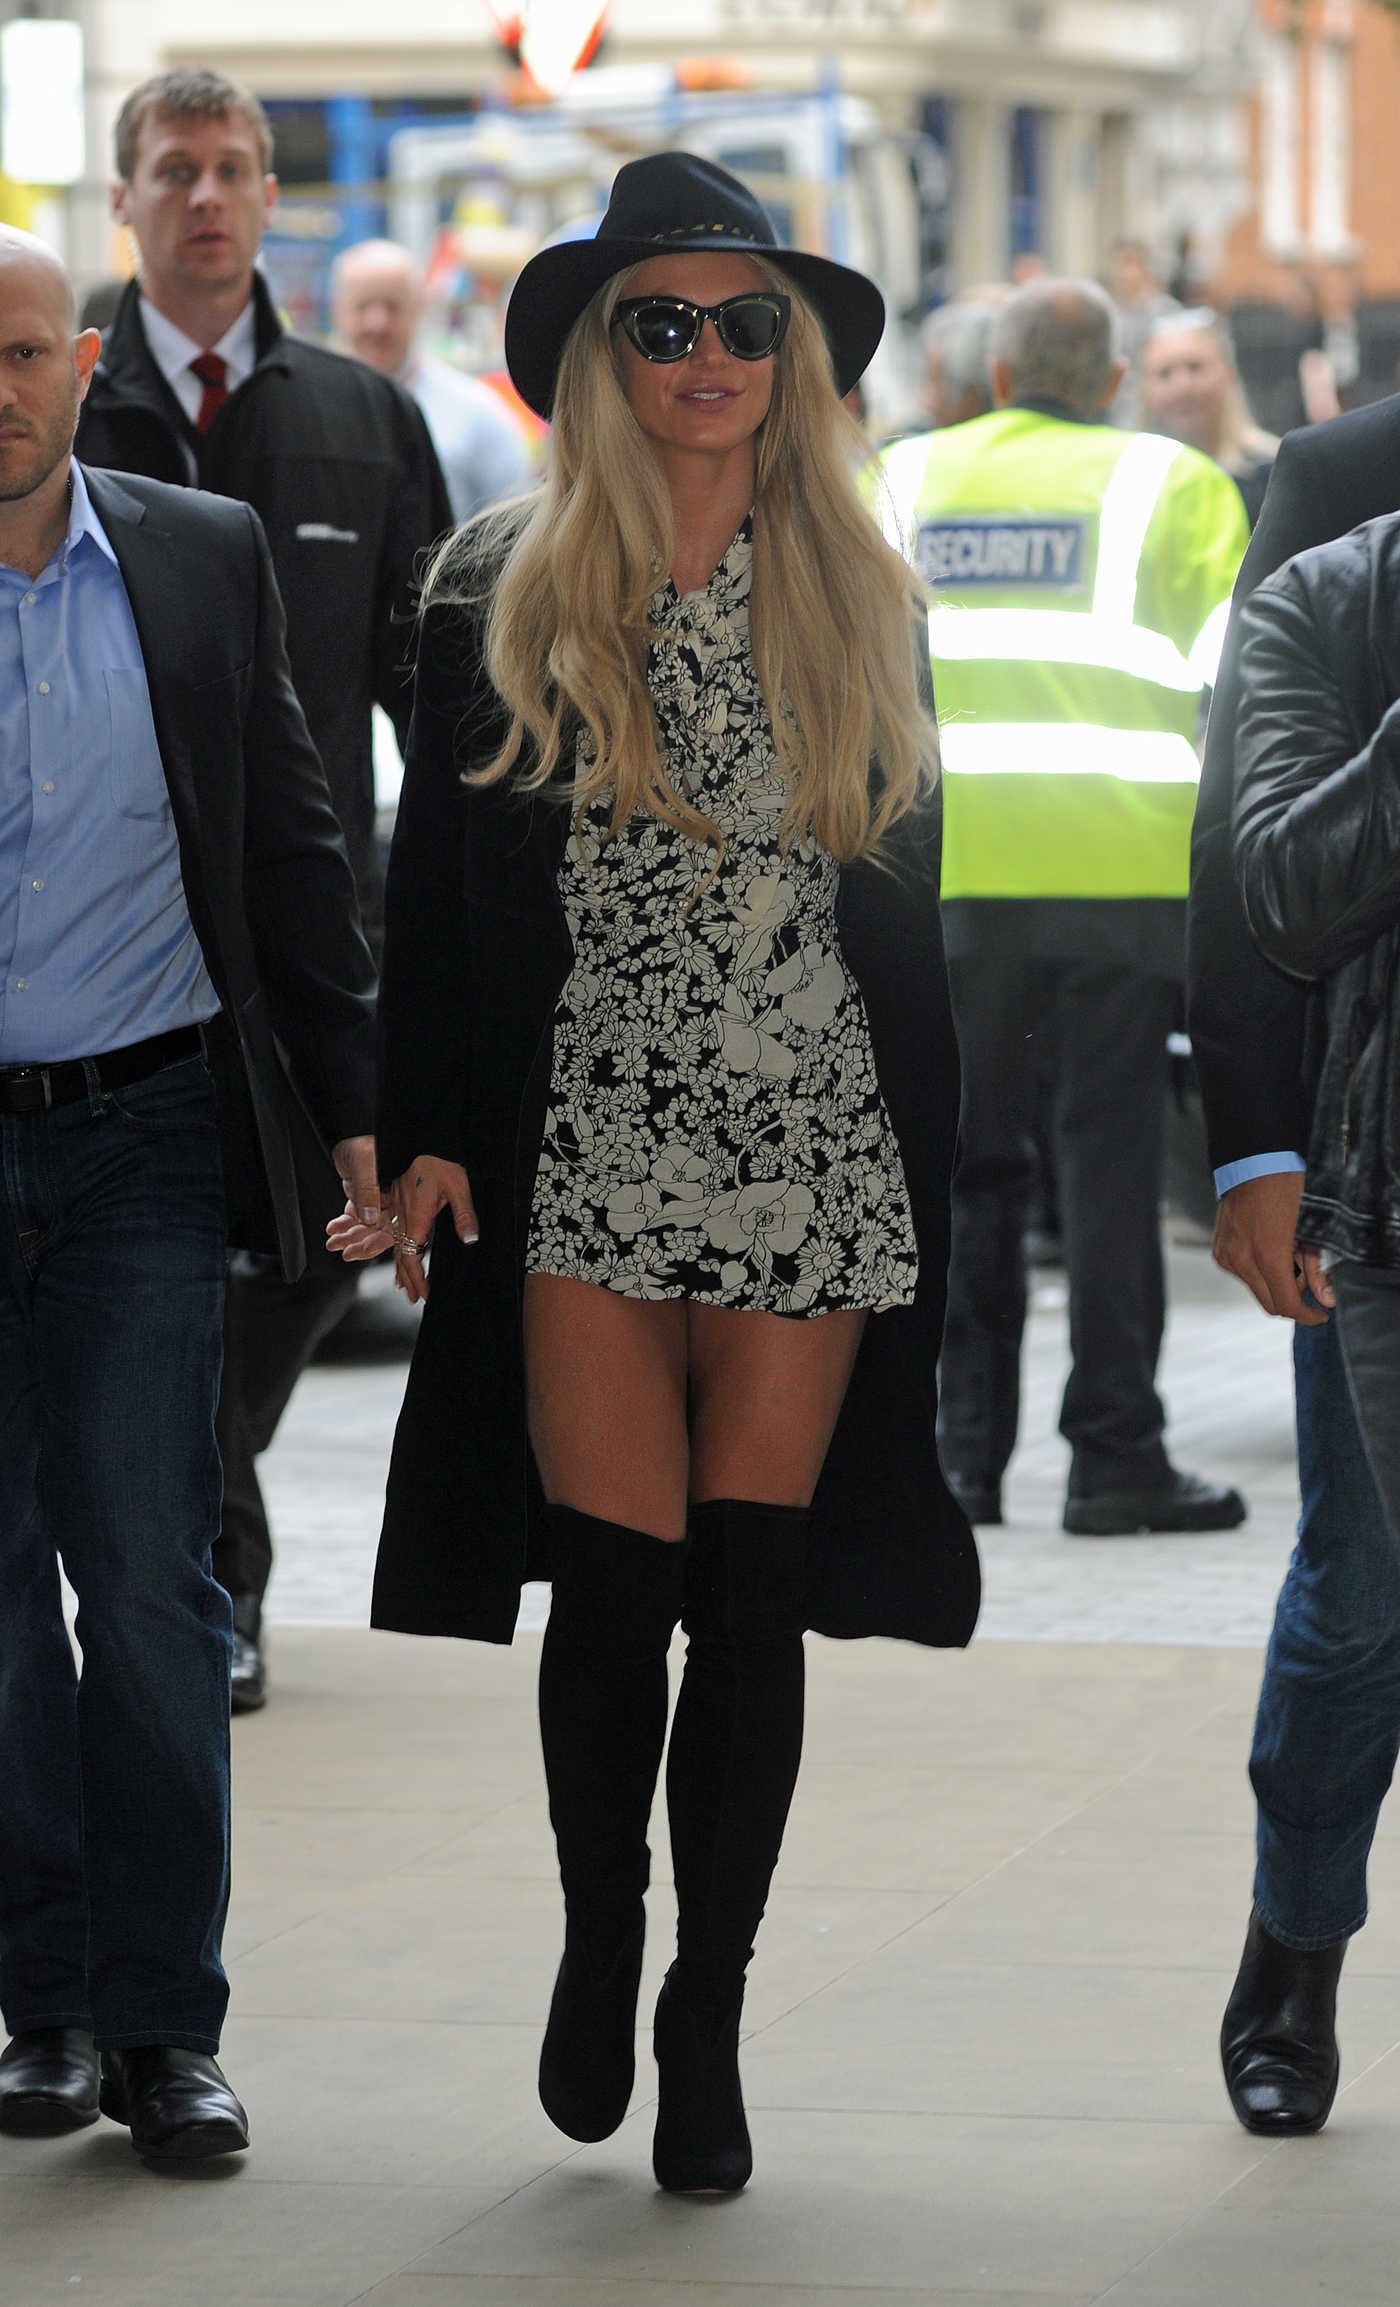 Britney Spears Arrives at BBC Radio 1 in London 09/28/2016